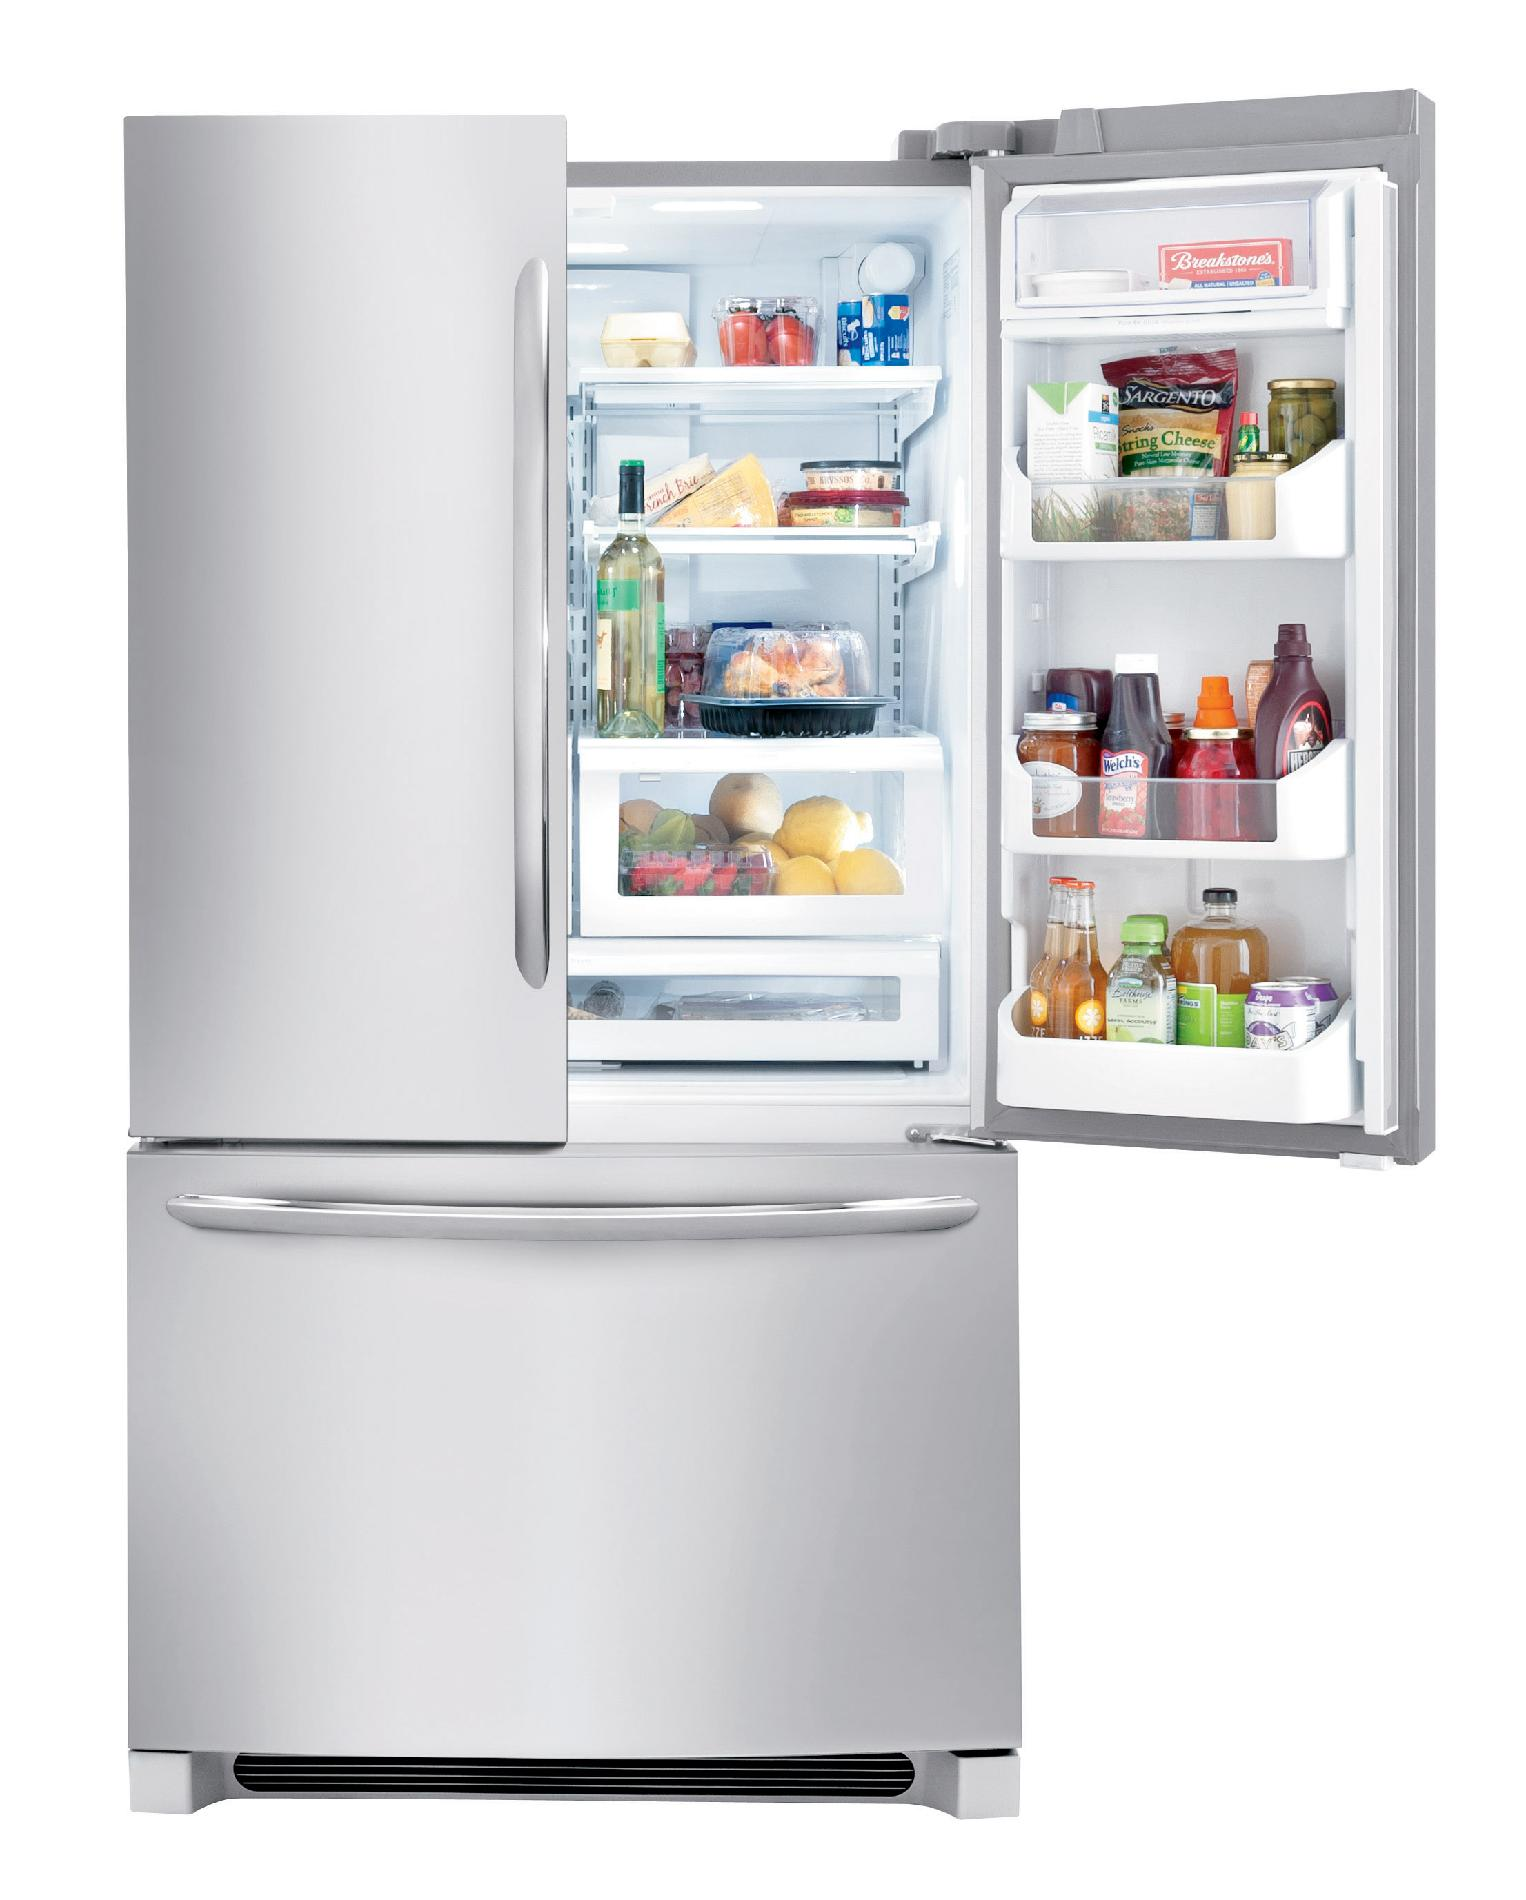 Frigidaire Gallery FGHN2866PF Gallery 27.8 cu. ft. French Door Refrigerator - Stainless Steel